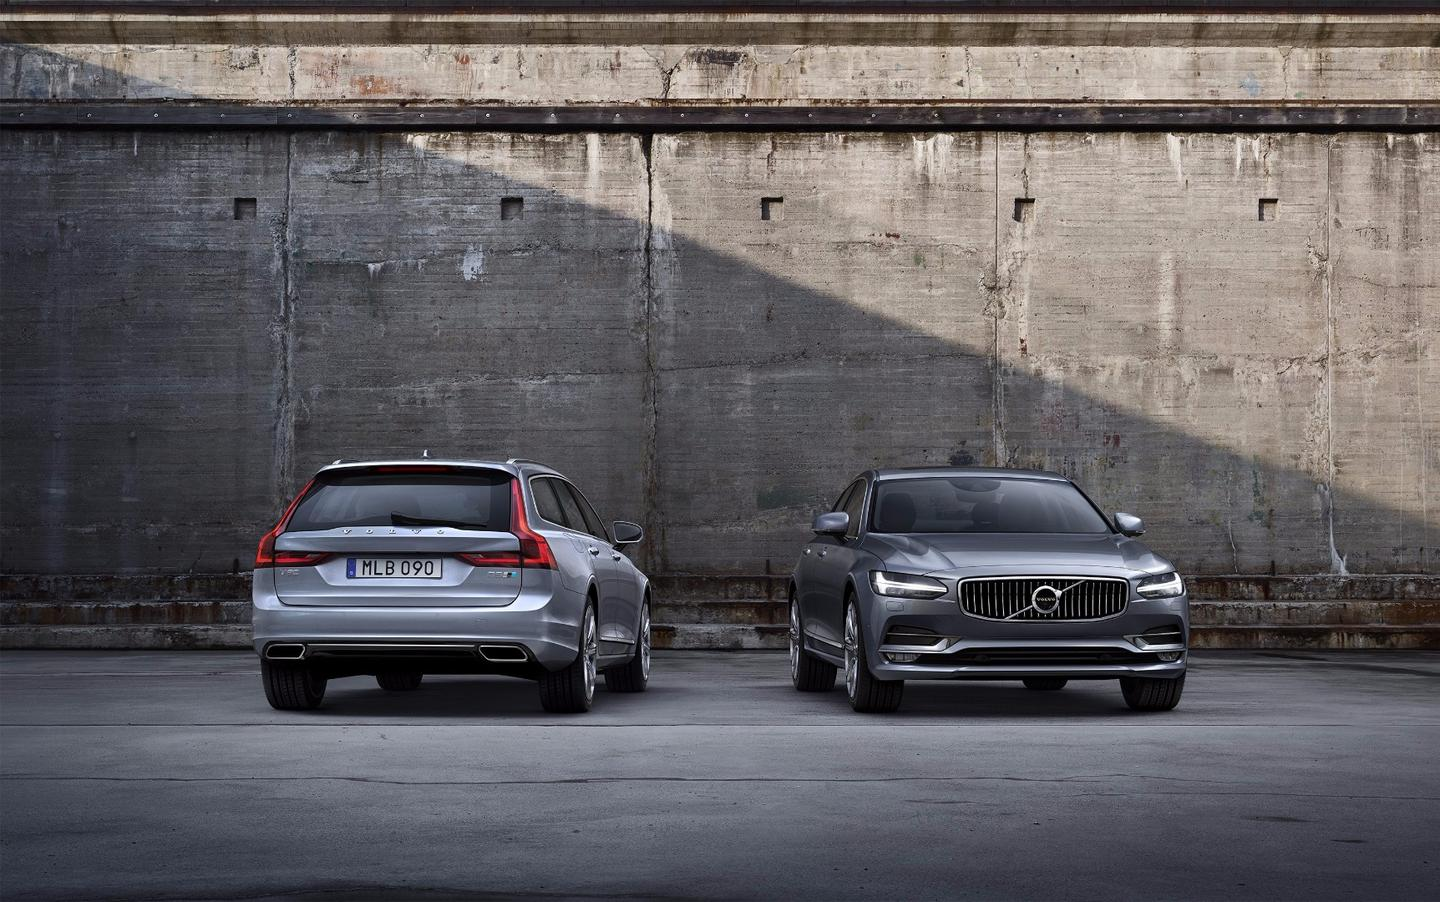 TheS90 and V90 Polestars getthrottle response, gear speed and precision, and engine performance upgrades